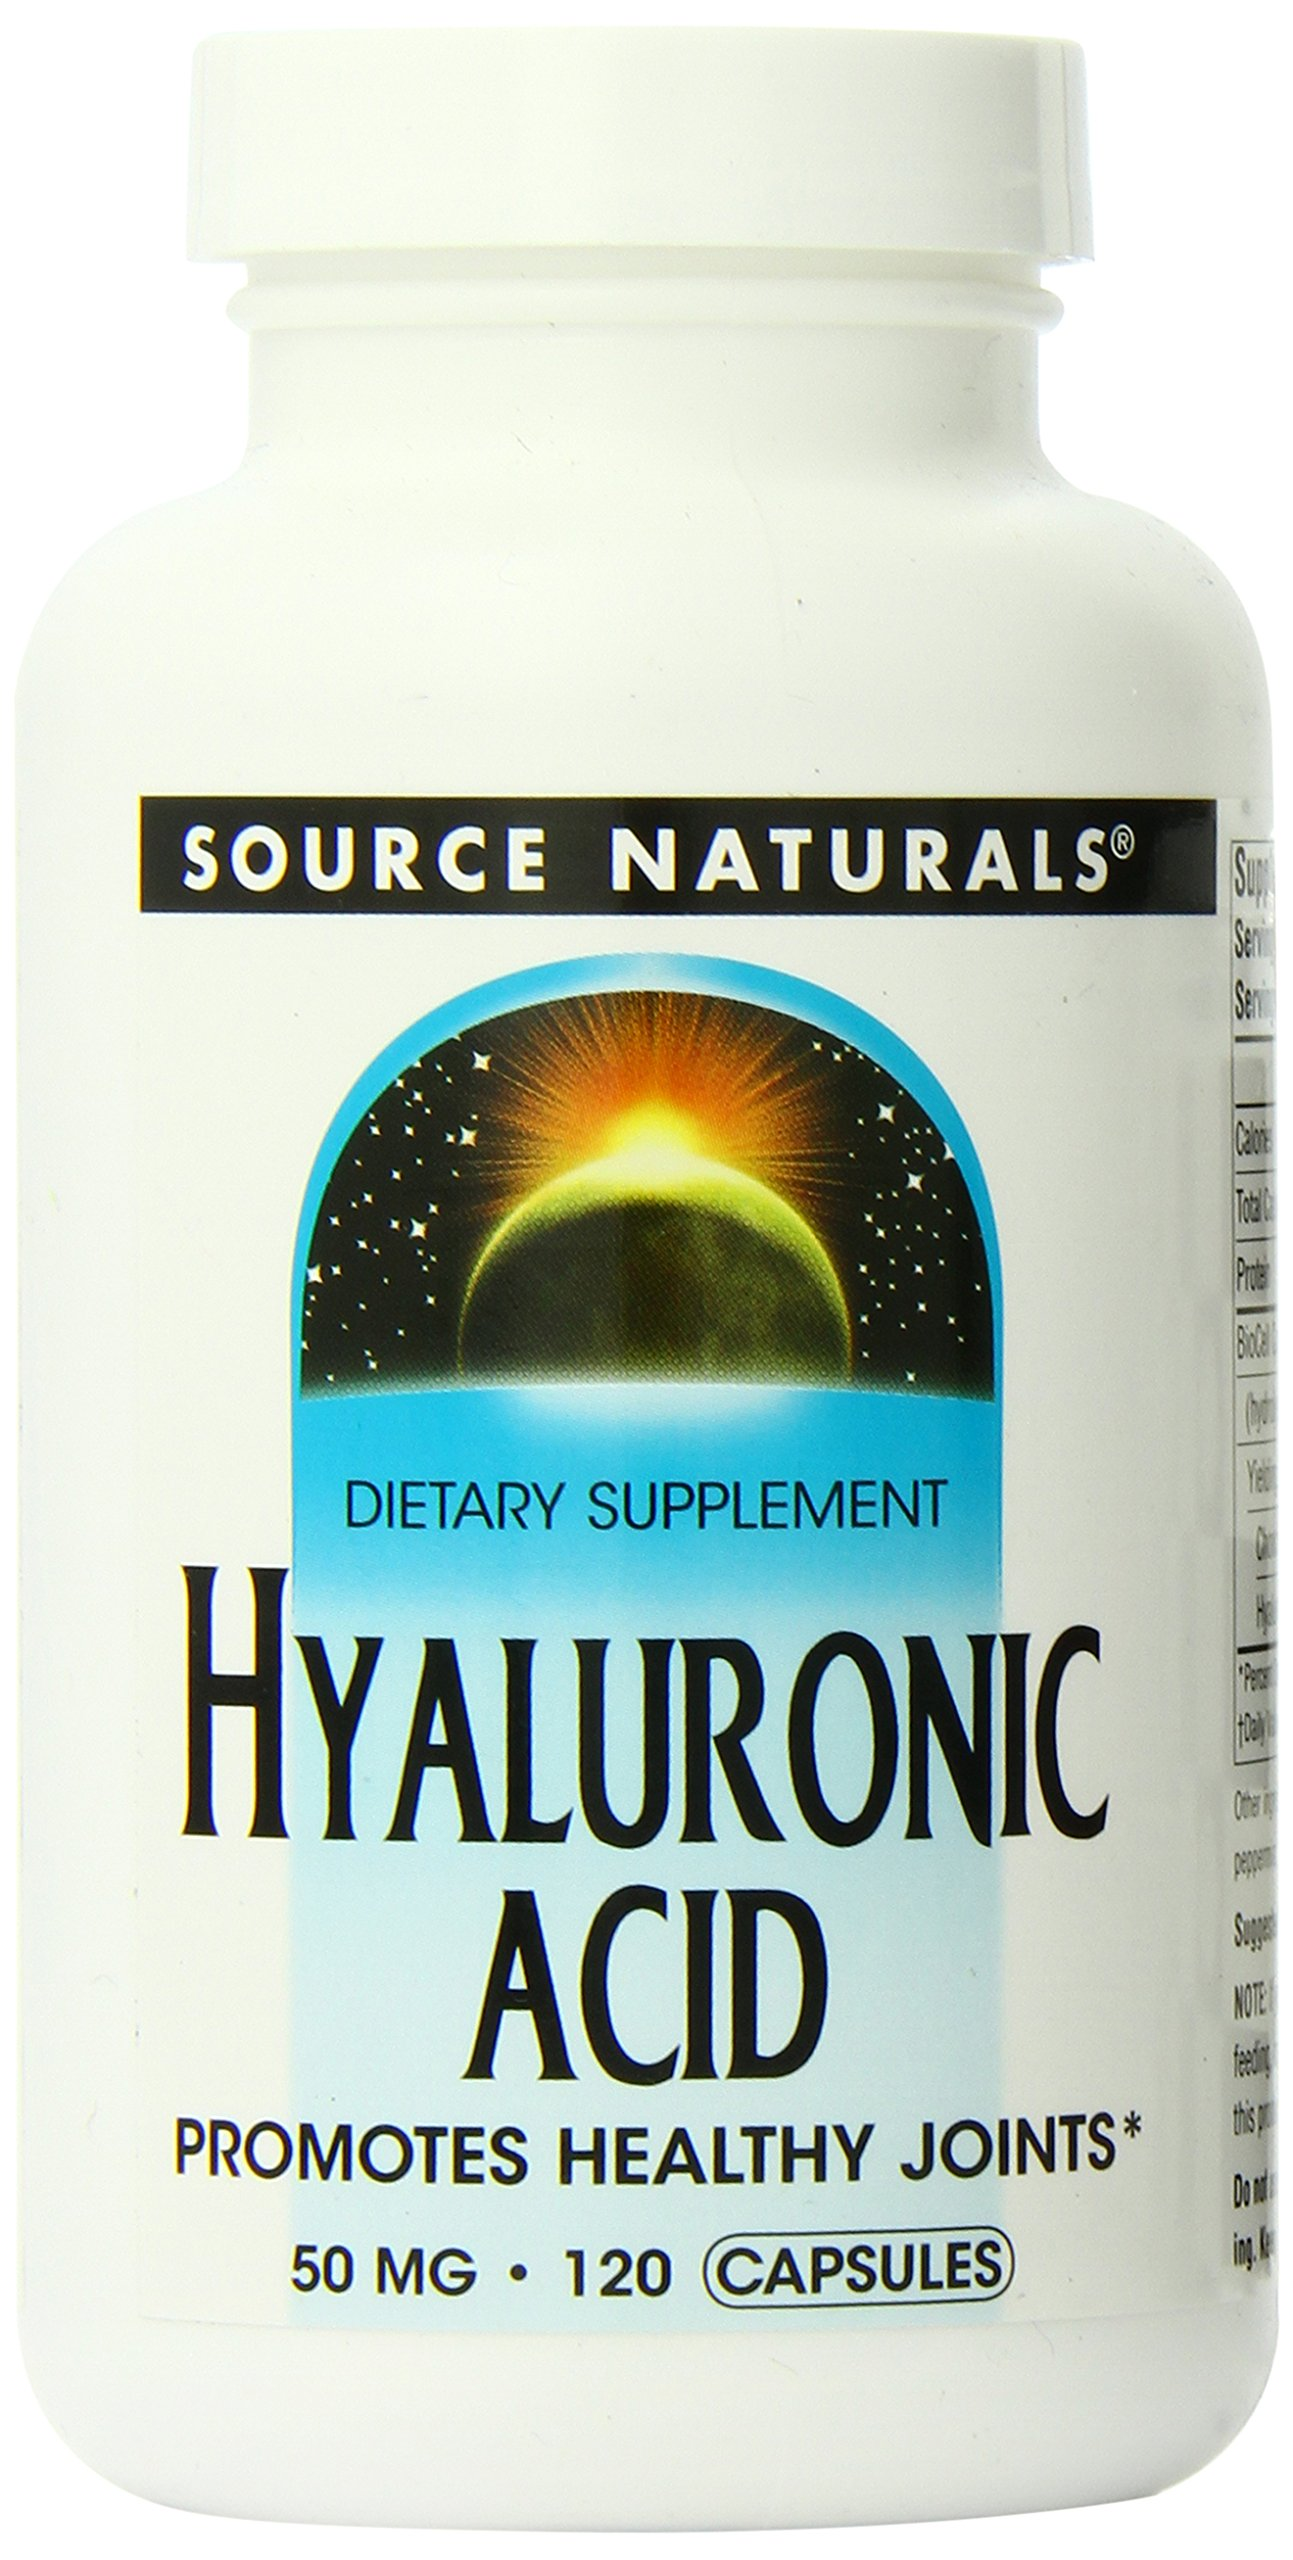 Source Naturals Hyaluronic Acid 50mg, 120 Capsules